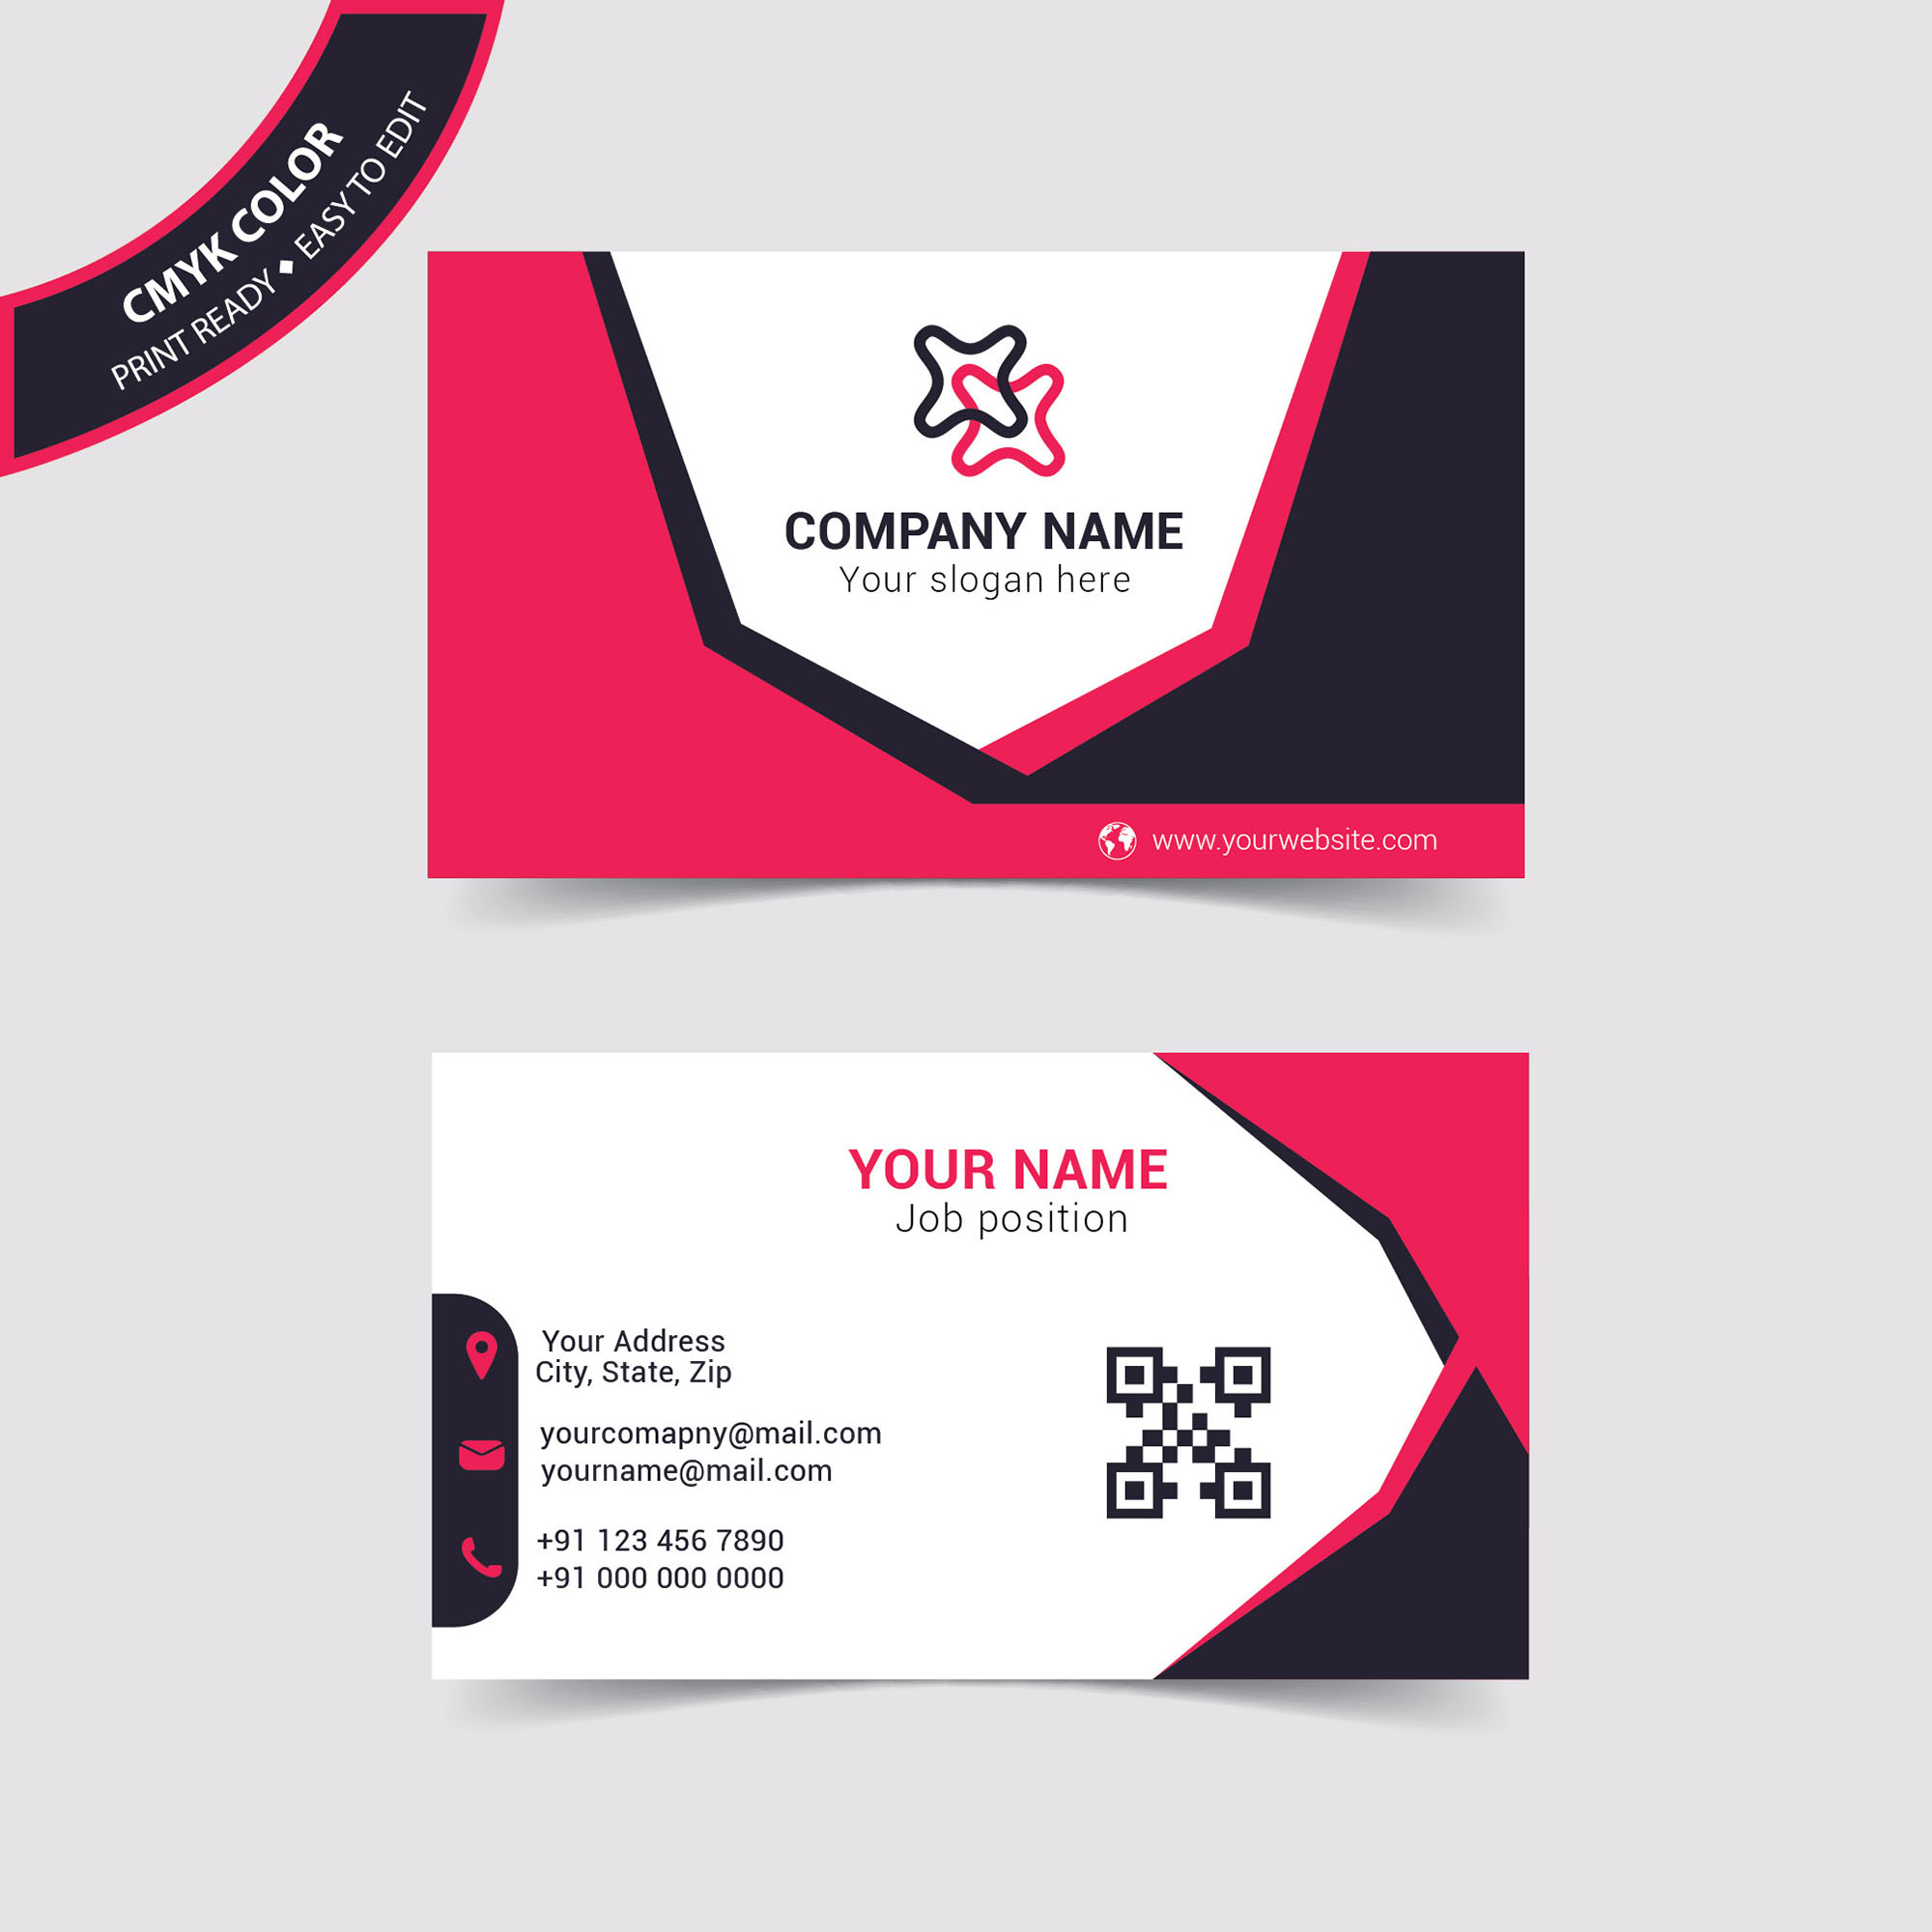 Personal name card design free download print template wisxi business card business cards business card design business card template design templates flashek